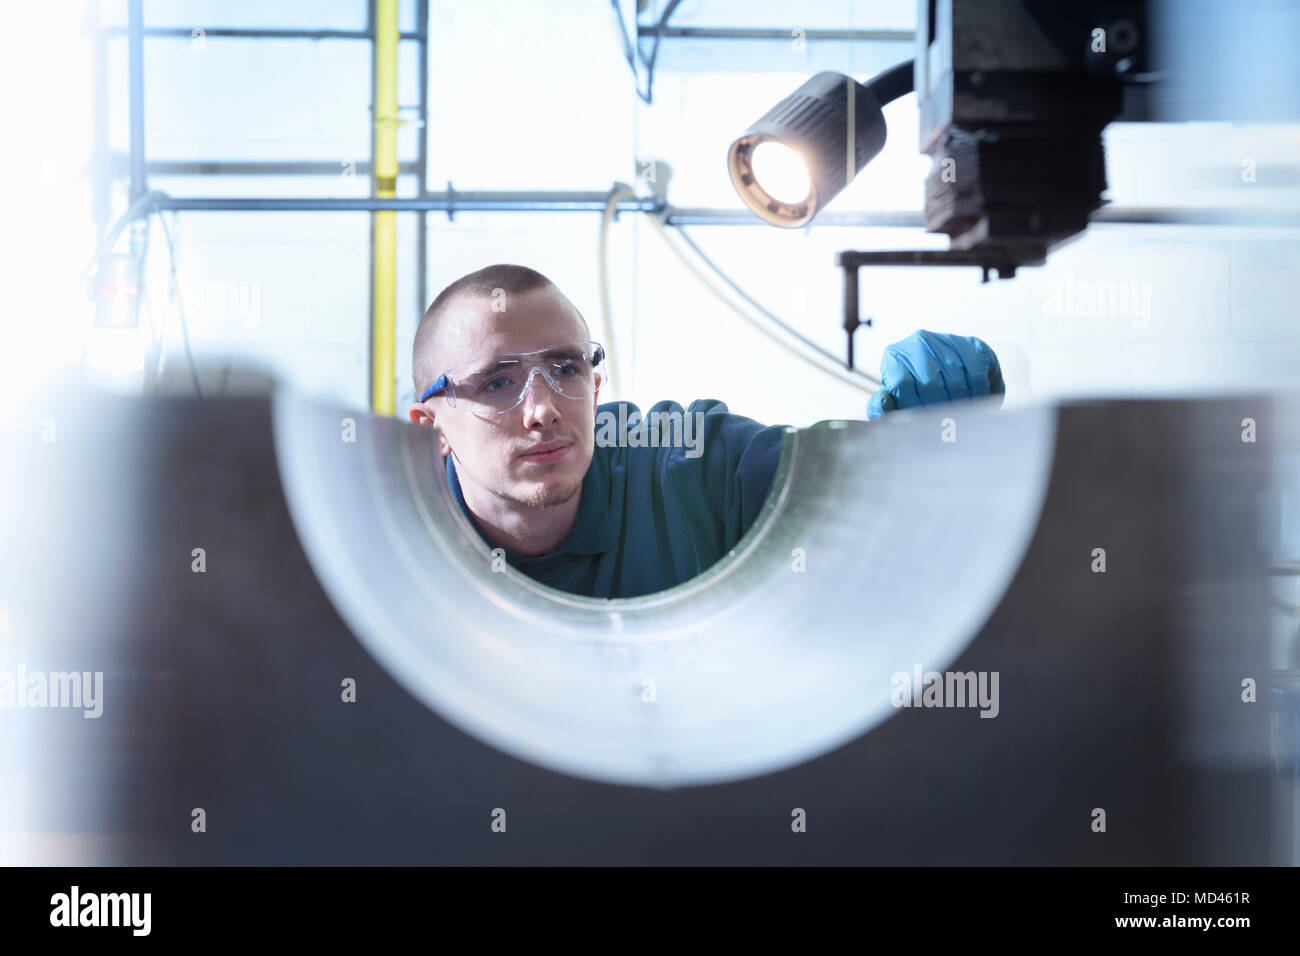 Engineer using electrical discharge (EDM) to drill holes in metal in precision engineering factory - Stock Image